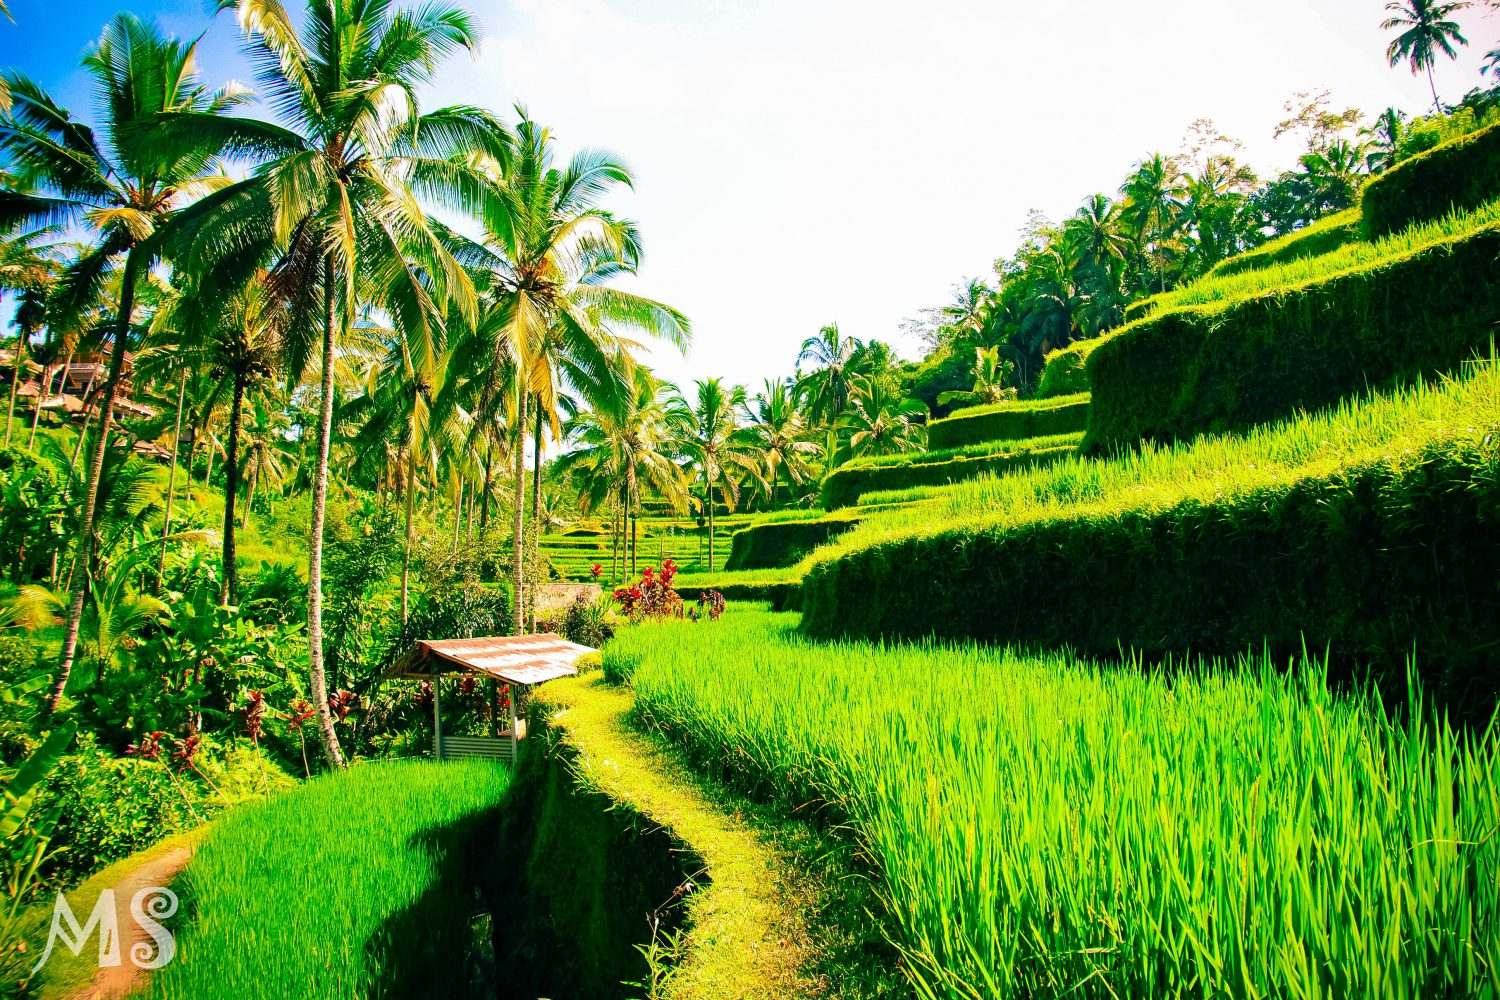 Bali Group Tour Package